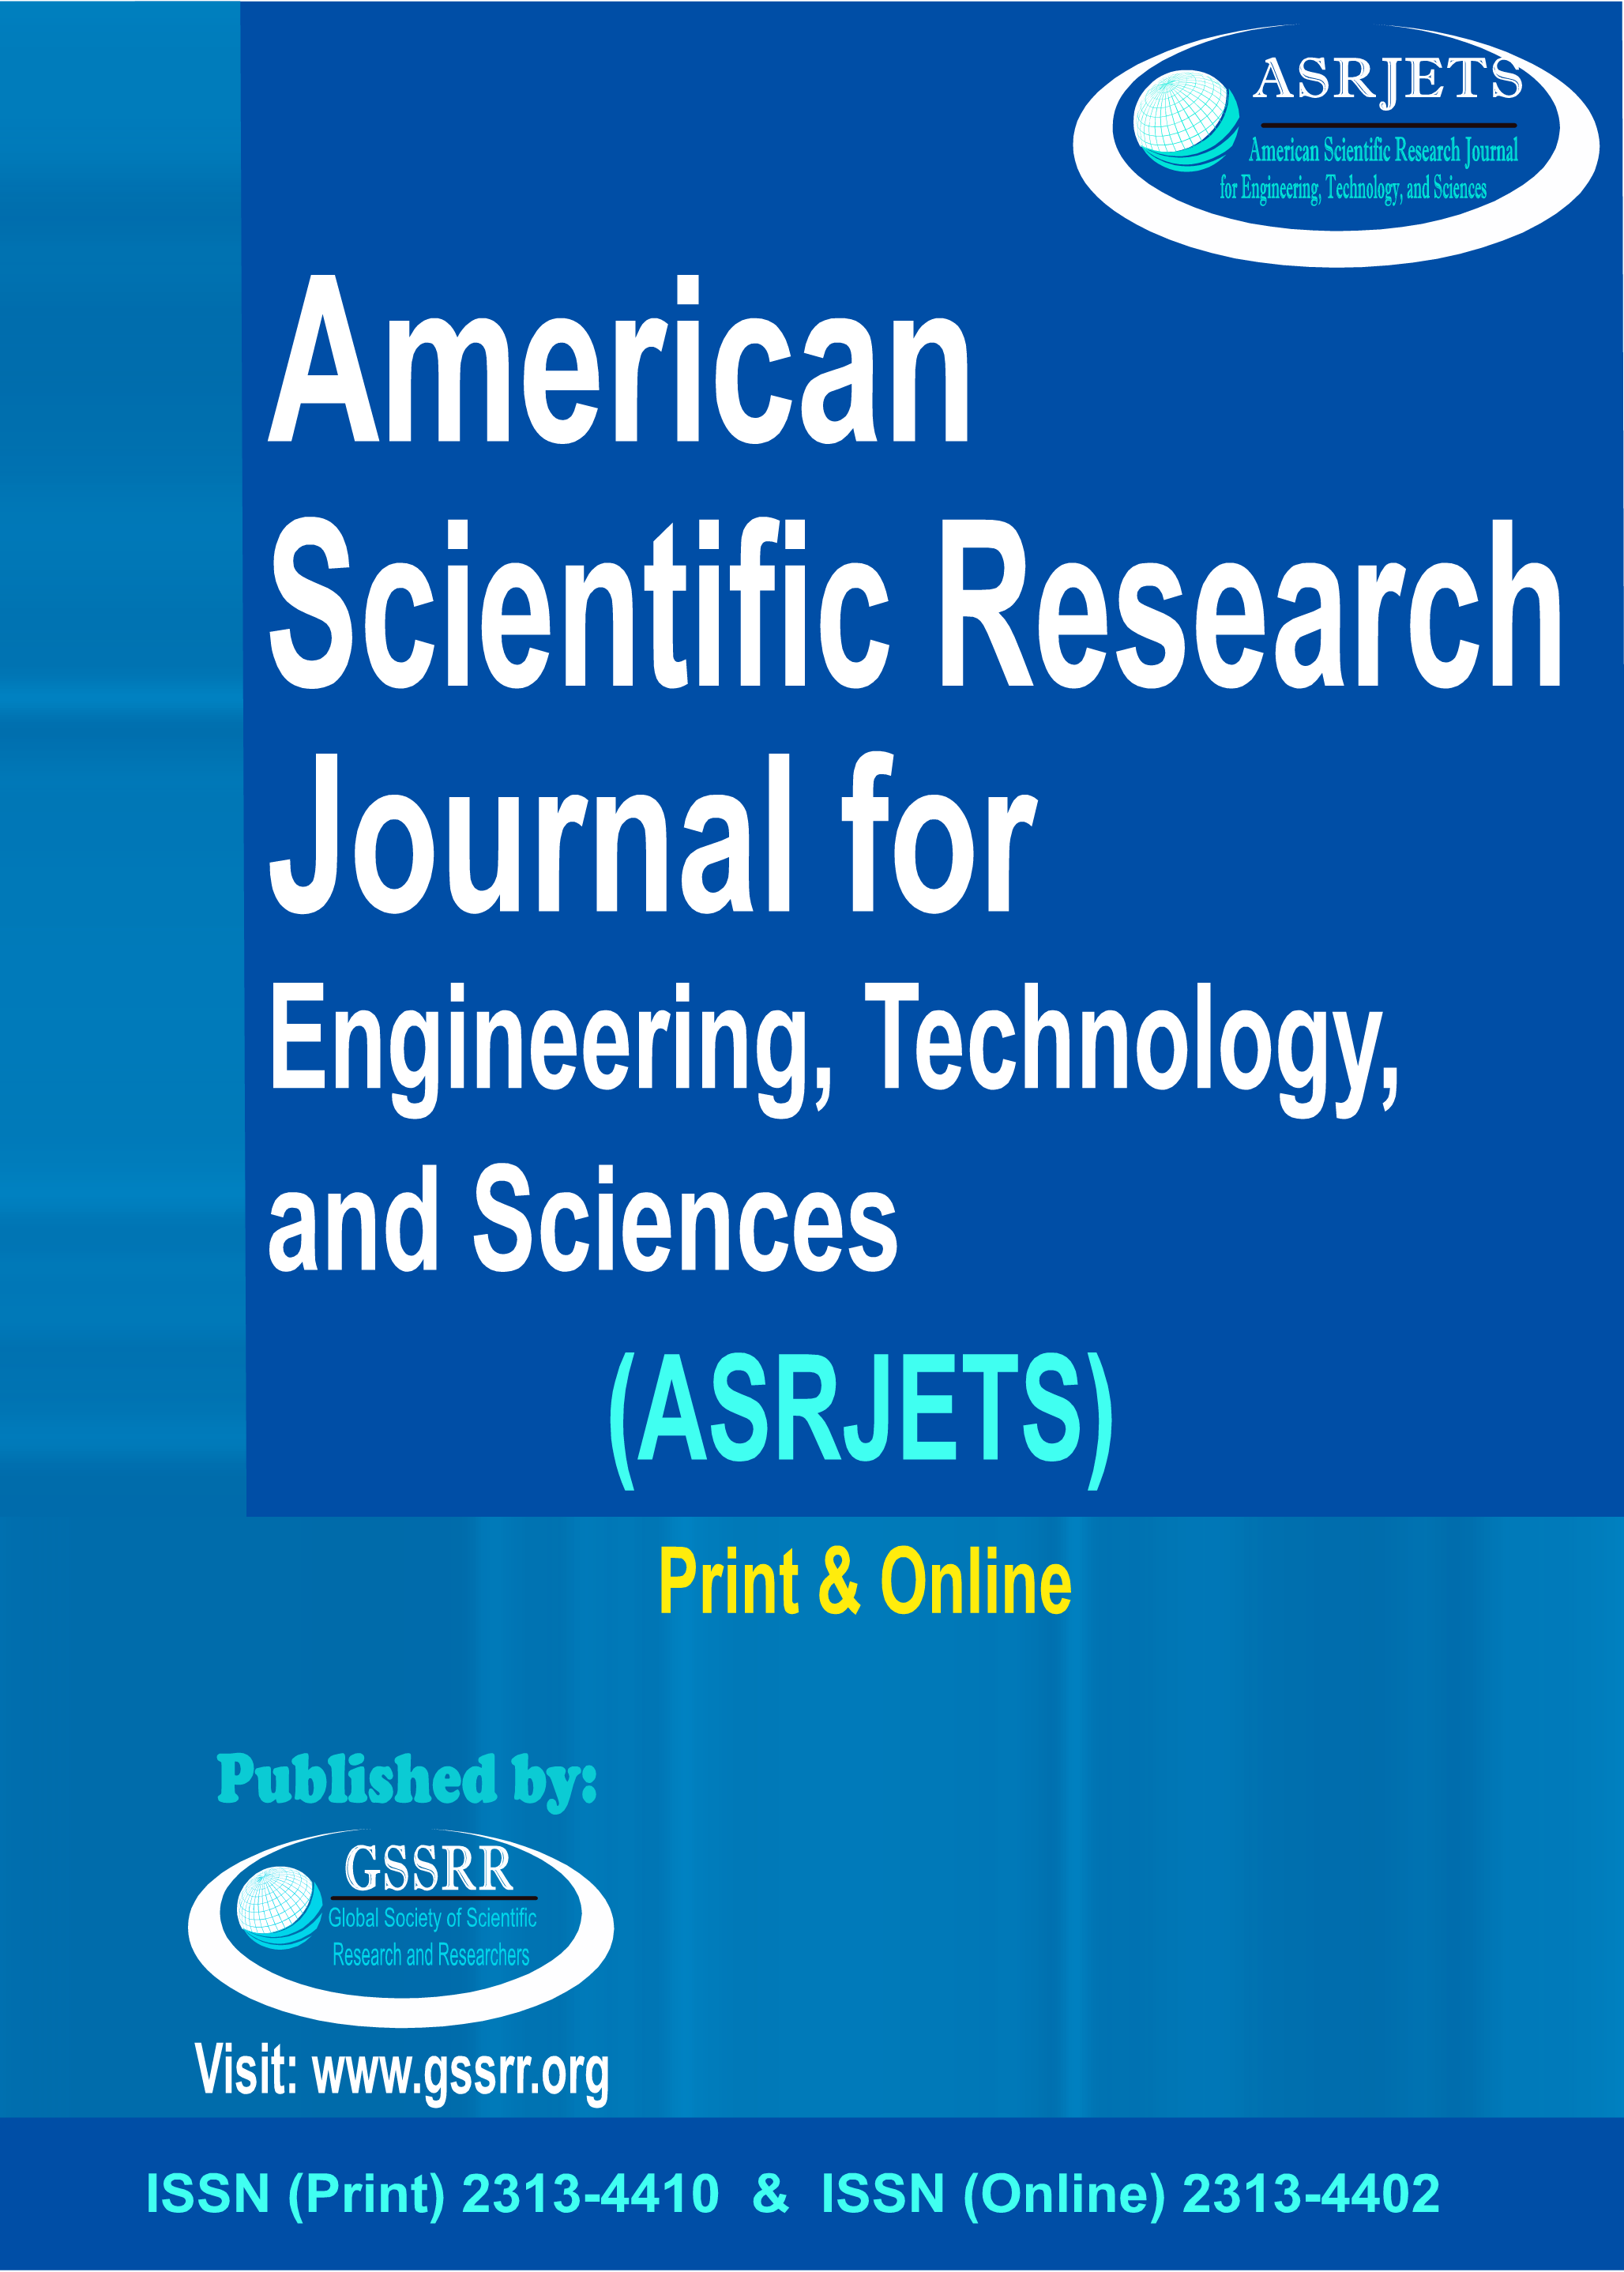 011 Online Researchs Asrjets Unusual Research Papers Voting Free Buy Full